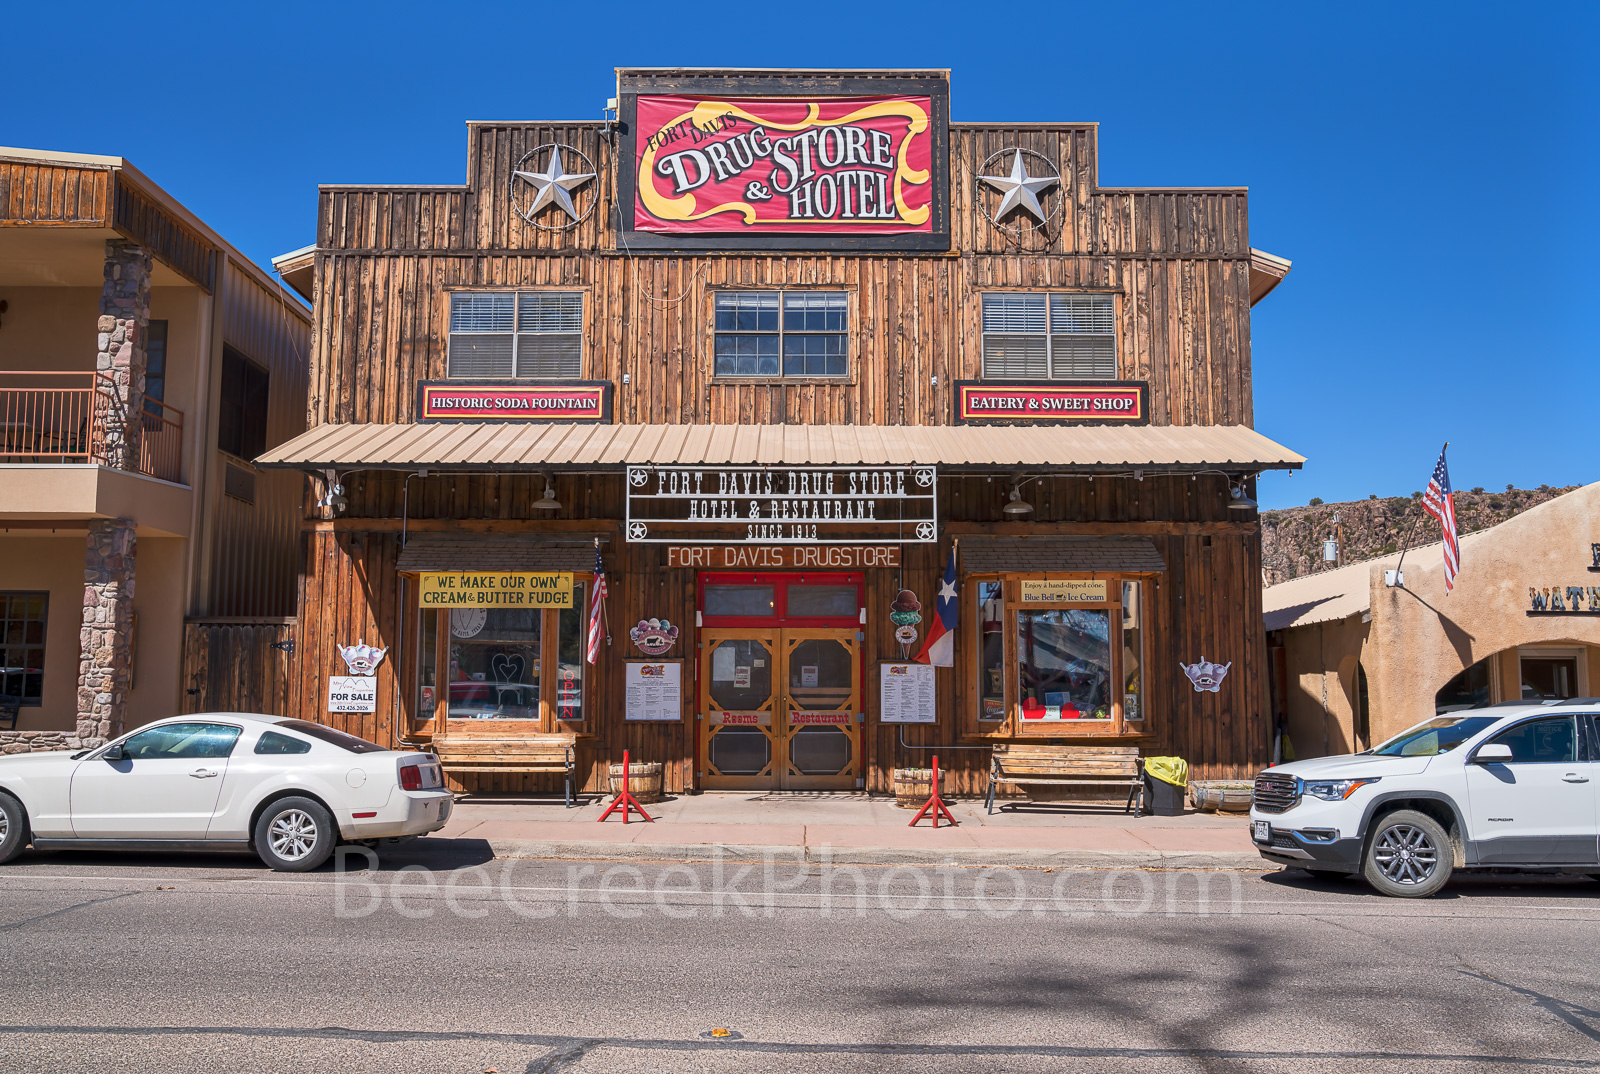 Fort Davis Drug Store and hotel, downtown, meals, soda fountain, fountain drinks, old timey feel, drug counter, burgers and shakes, Fort Davis, Davis mountains, west texas, , photo